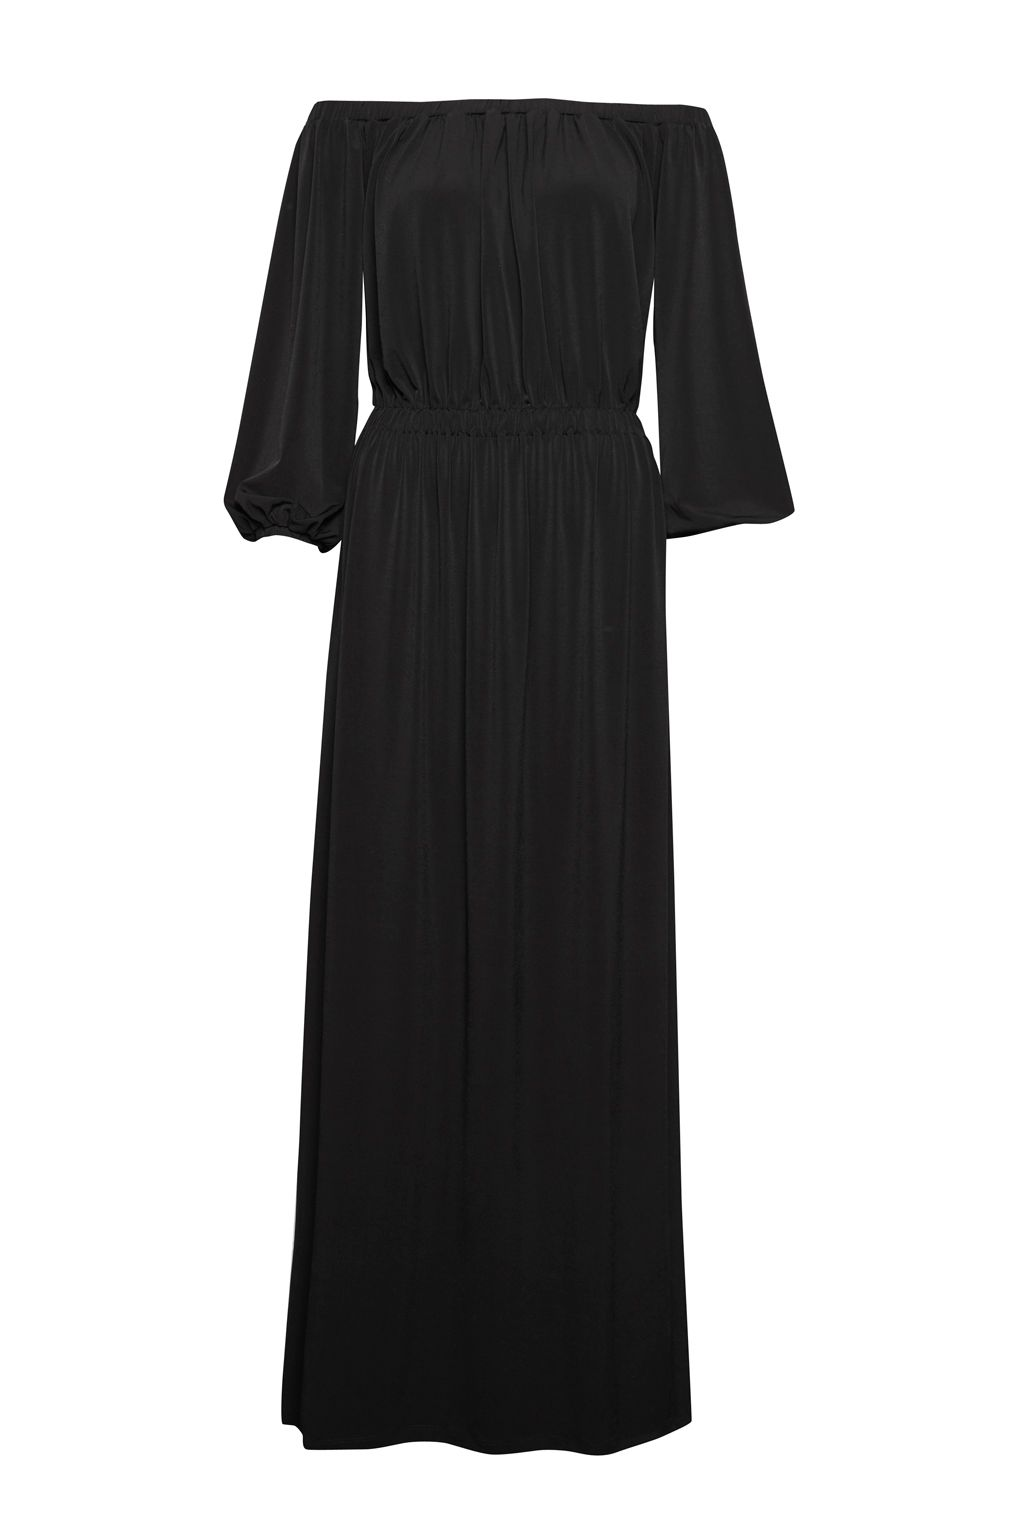 French Connection Adele Drape Bardot Look Maxi Dress, Black